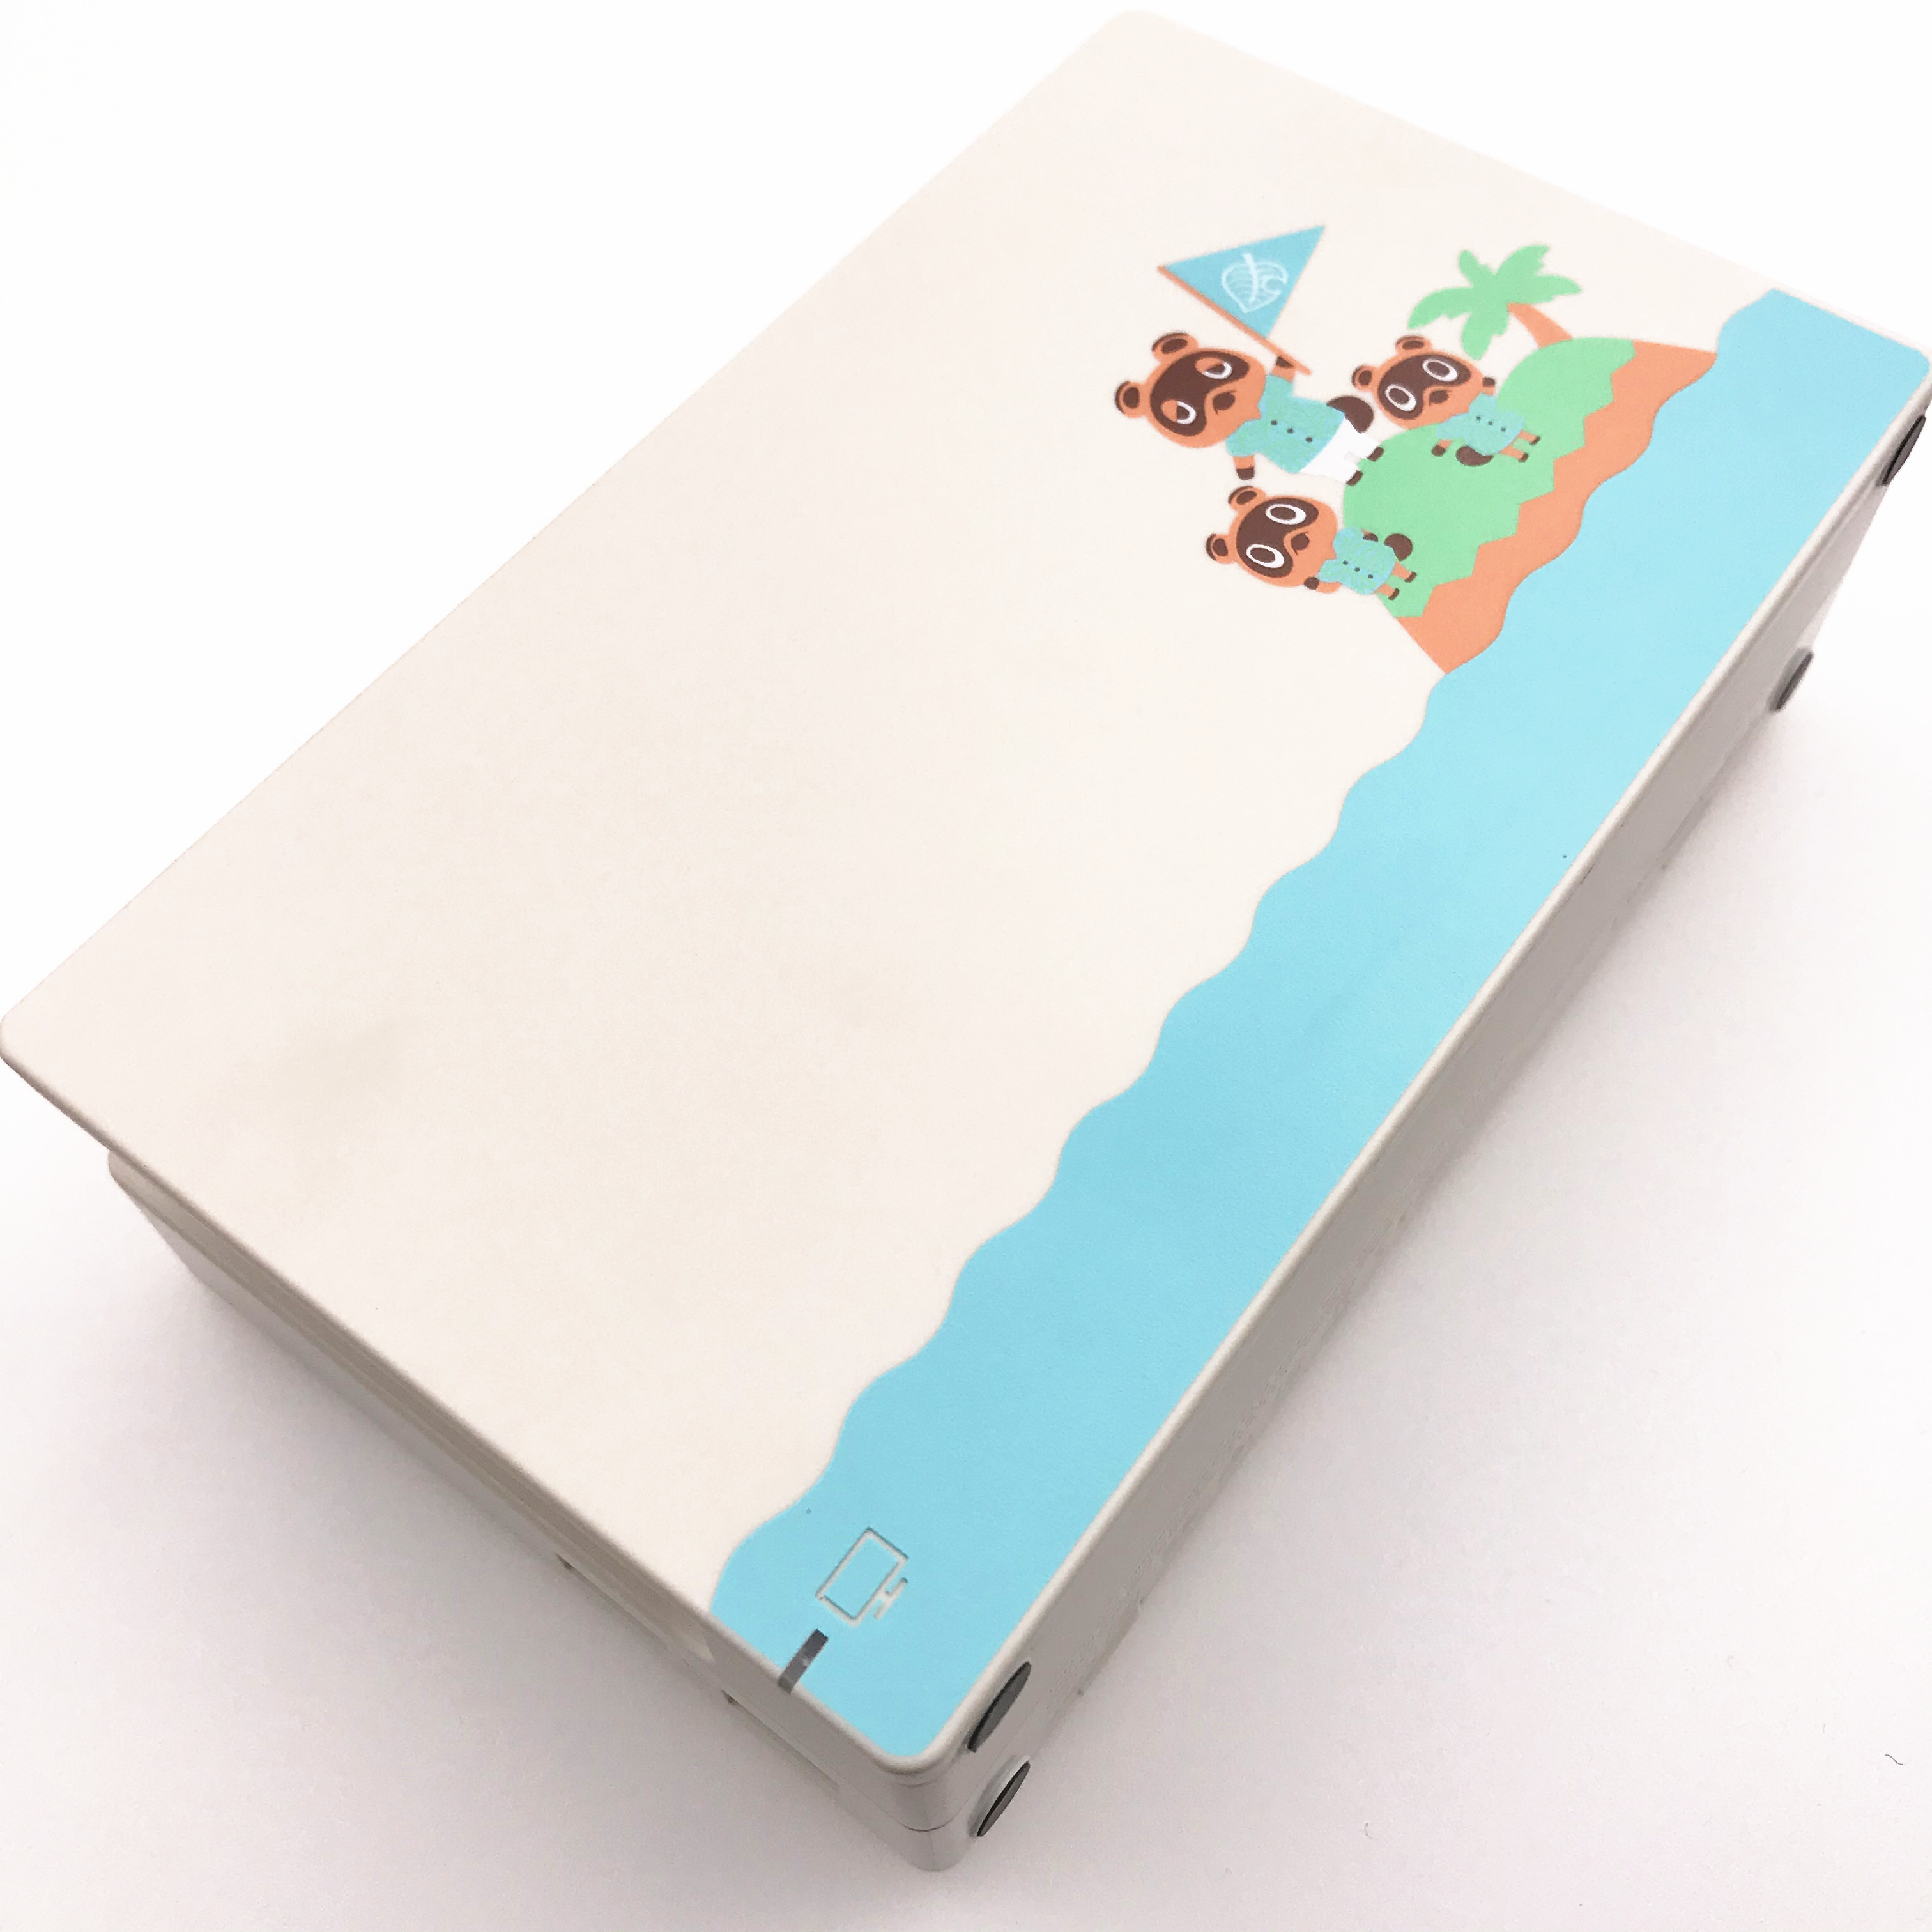 New Animal Crossing Complete Charging Dock For Ns Nintend Switch